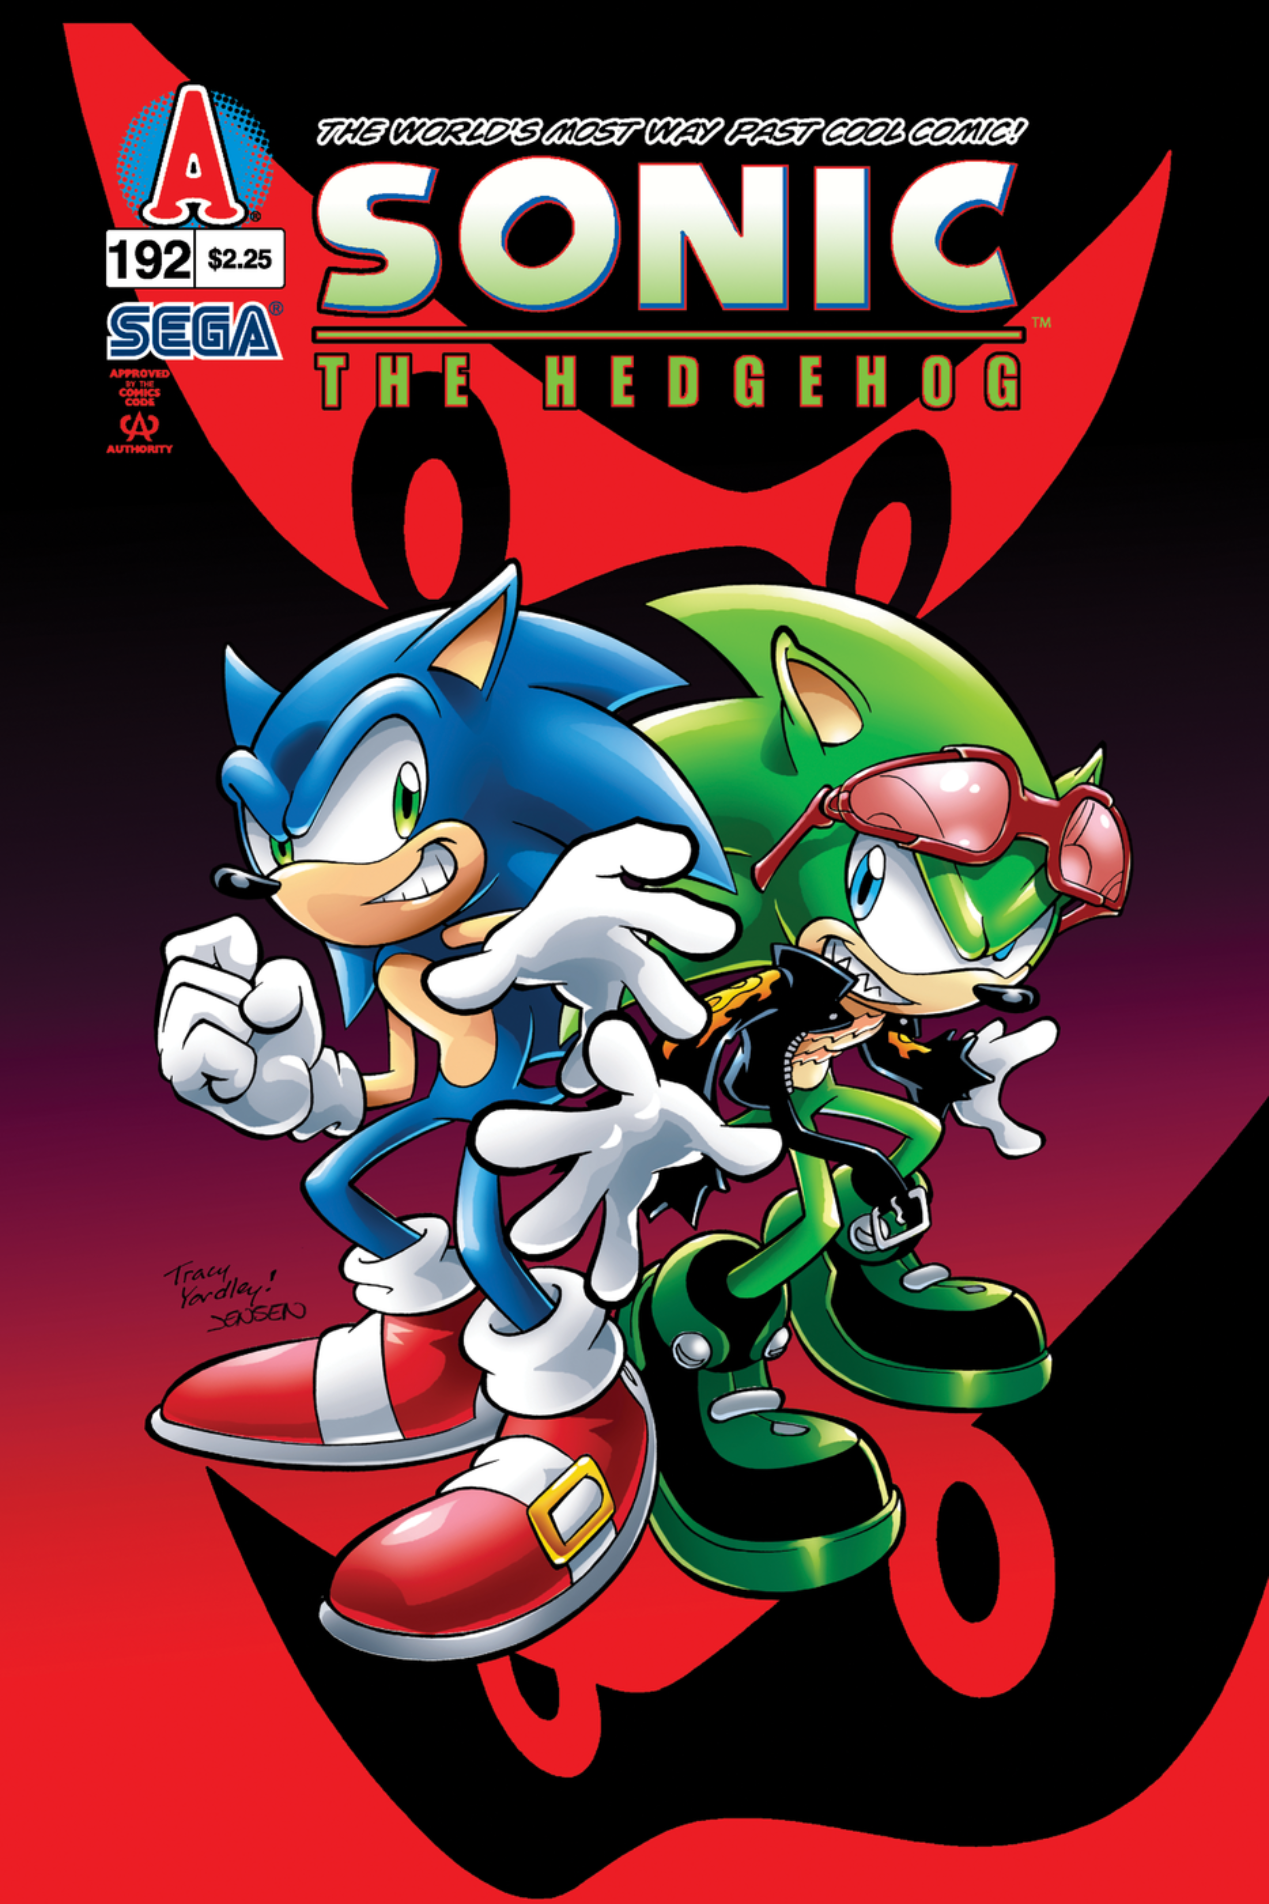 Archie Sonic the Hedgehog Issue 192